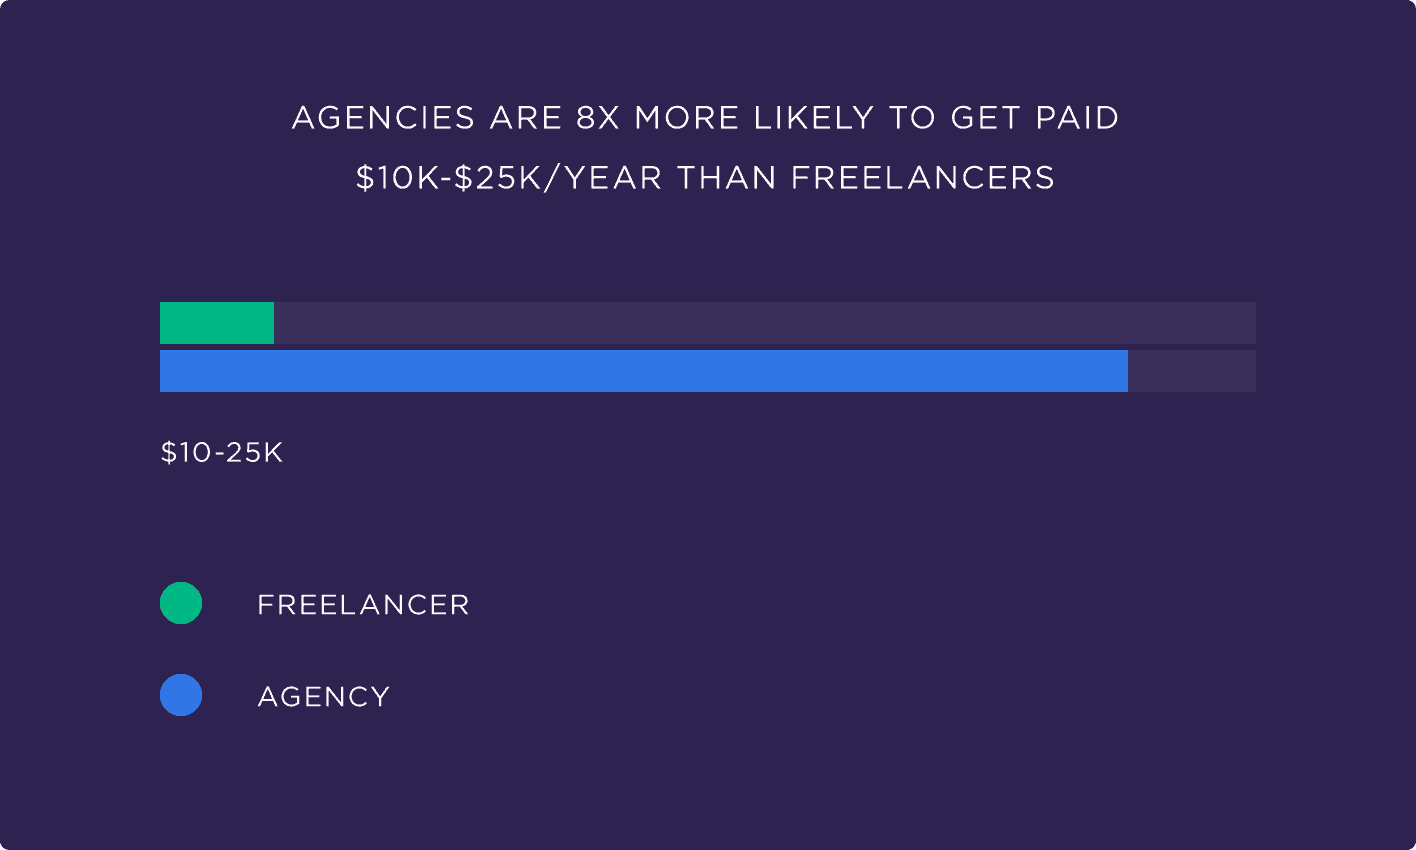 Agencies are 8X more likely to get paid $10k-$25k/year than freelancers